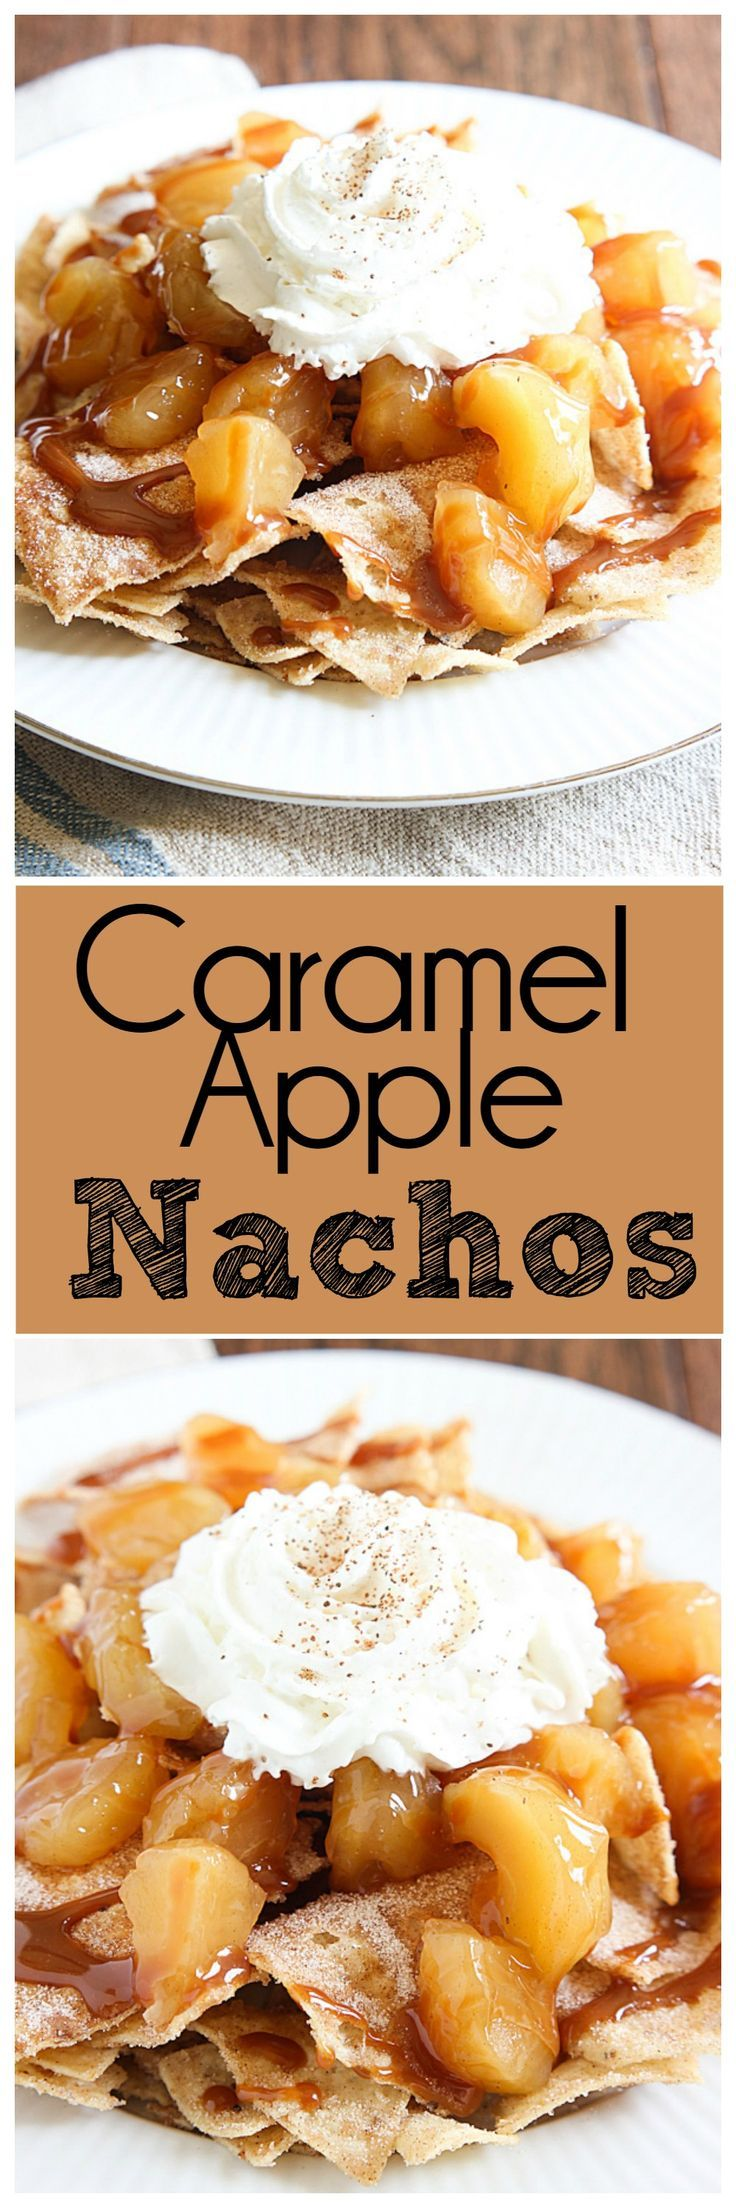 The perfect dessert for Taco Tuesday would be Caramel Apple Nachos. Cinnamon Sugar tortilla chips topped with Caramel Apple pie filling and whipped cream. It's a winner! | mandysrecipeboxbl...